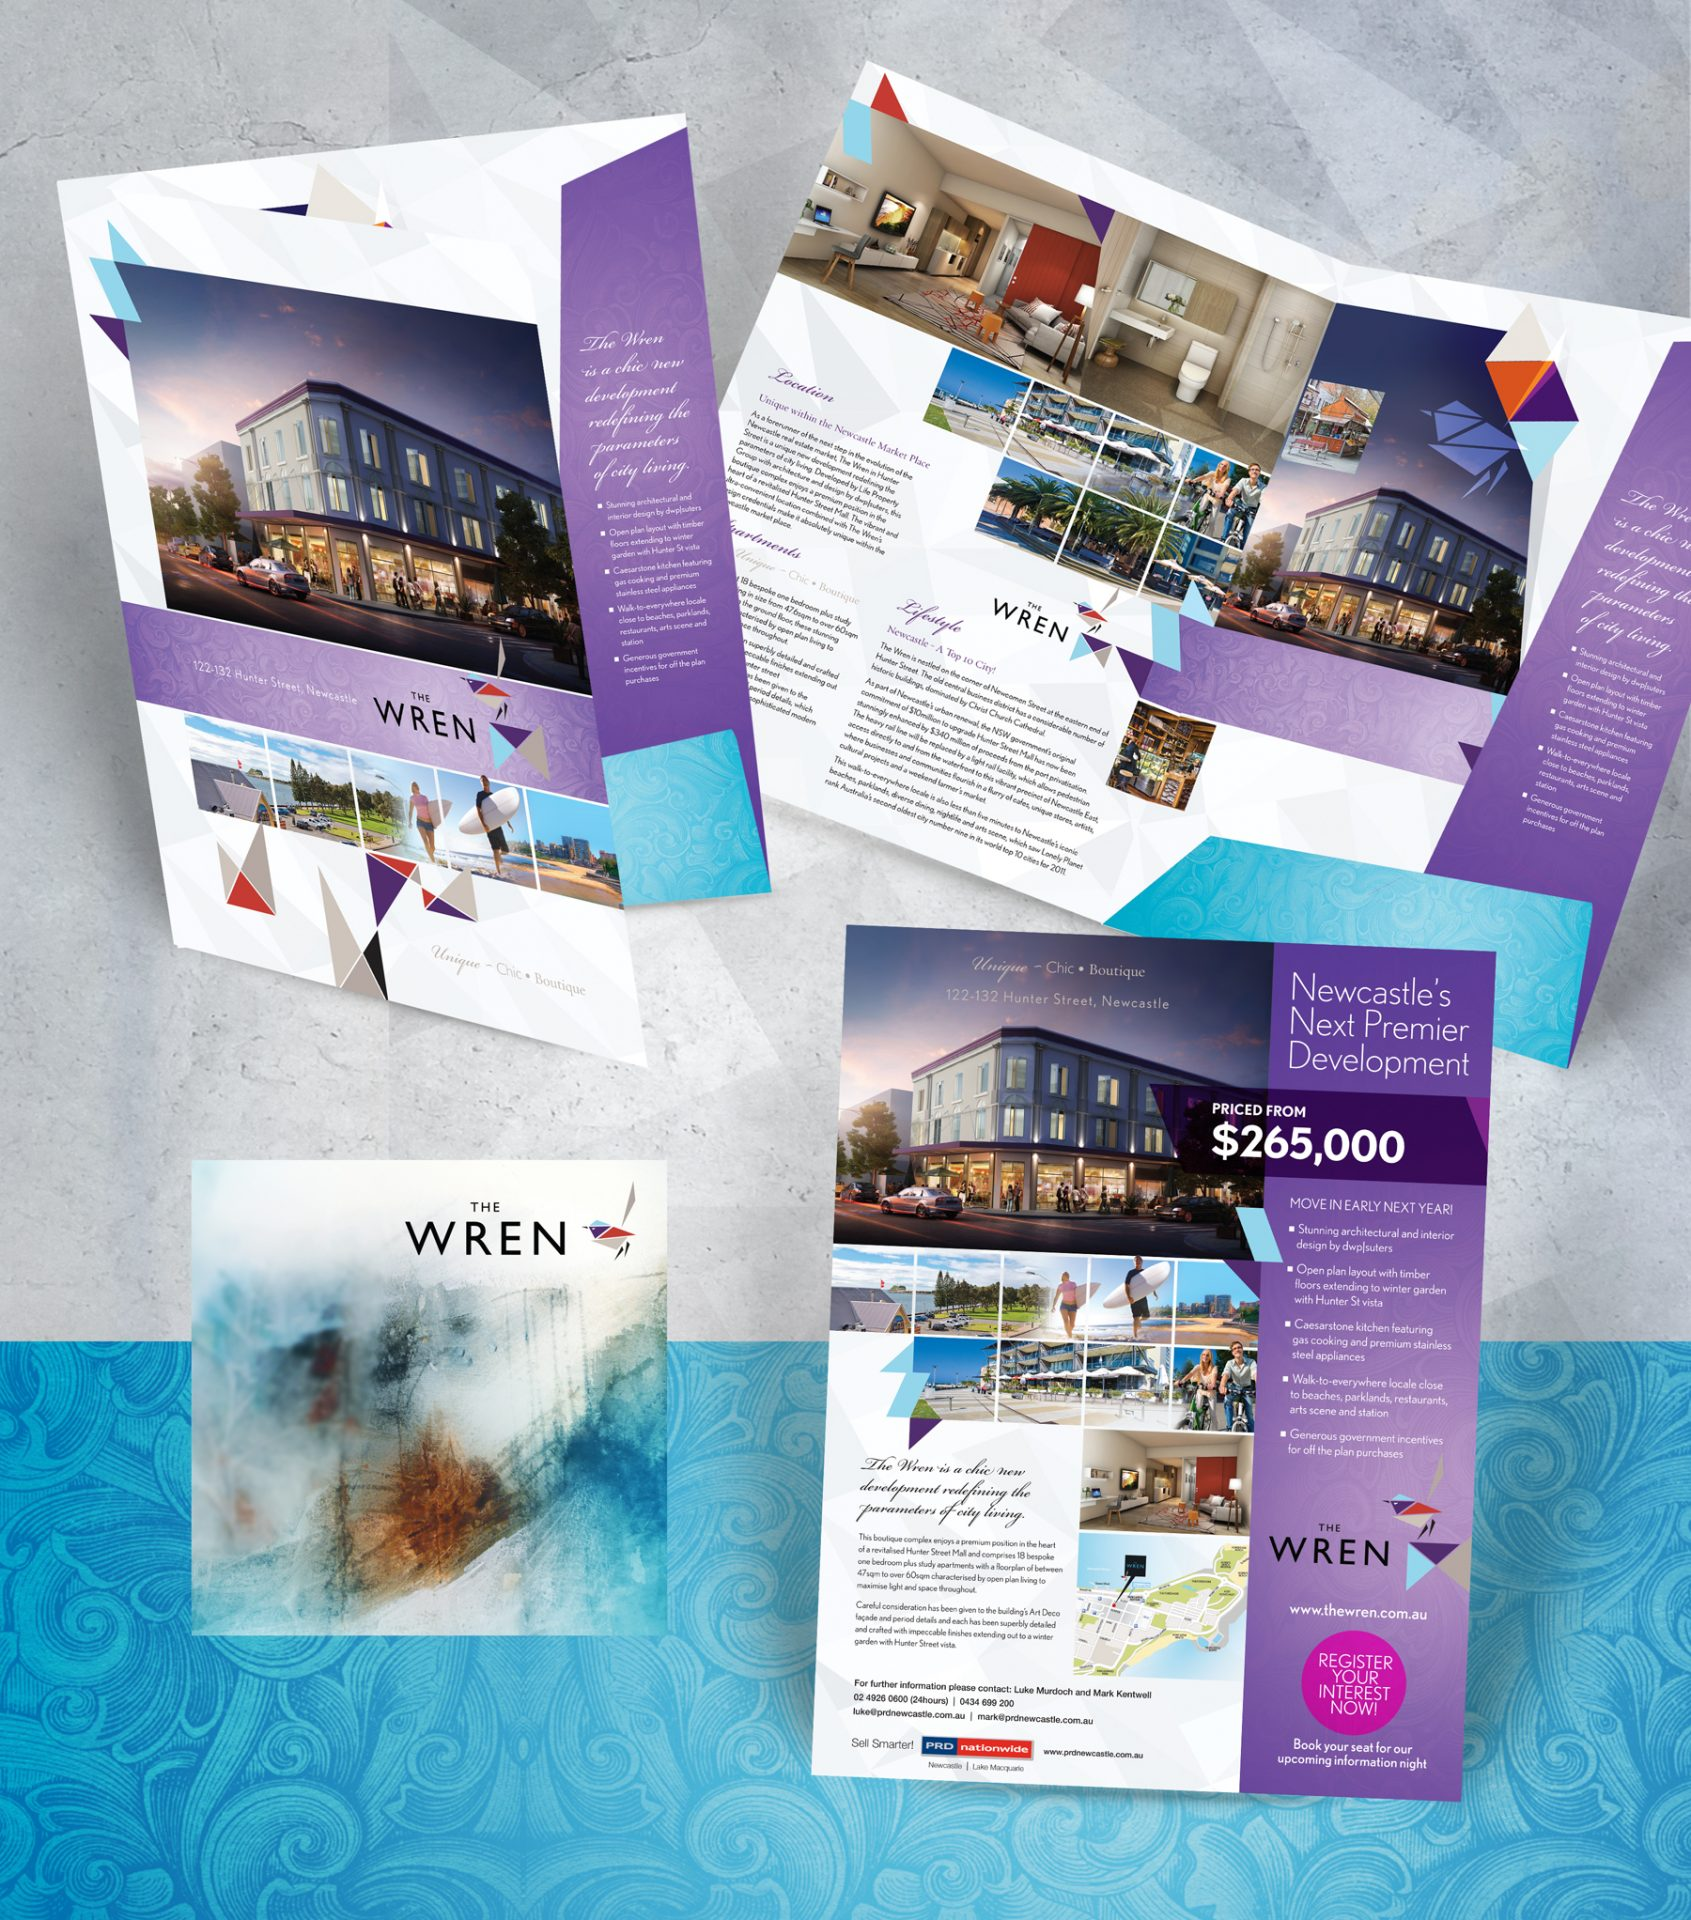 The Wren_Branding display banner on grey background